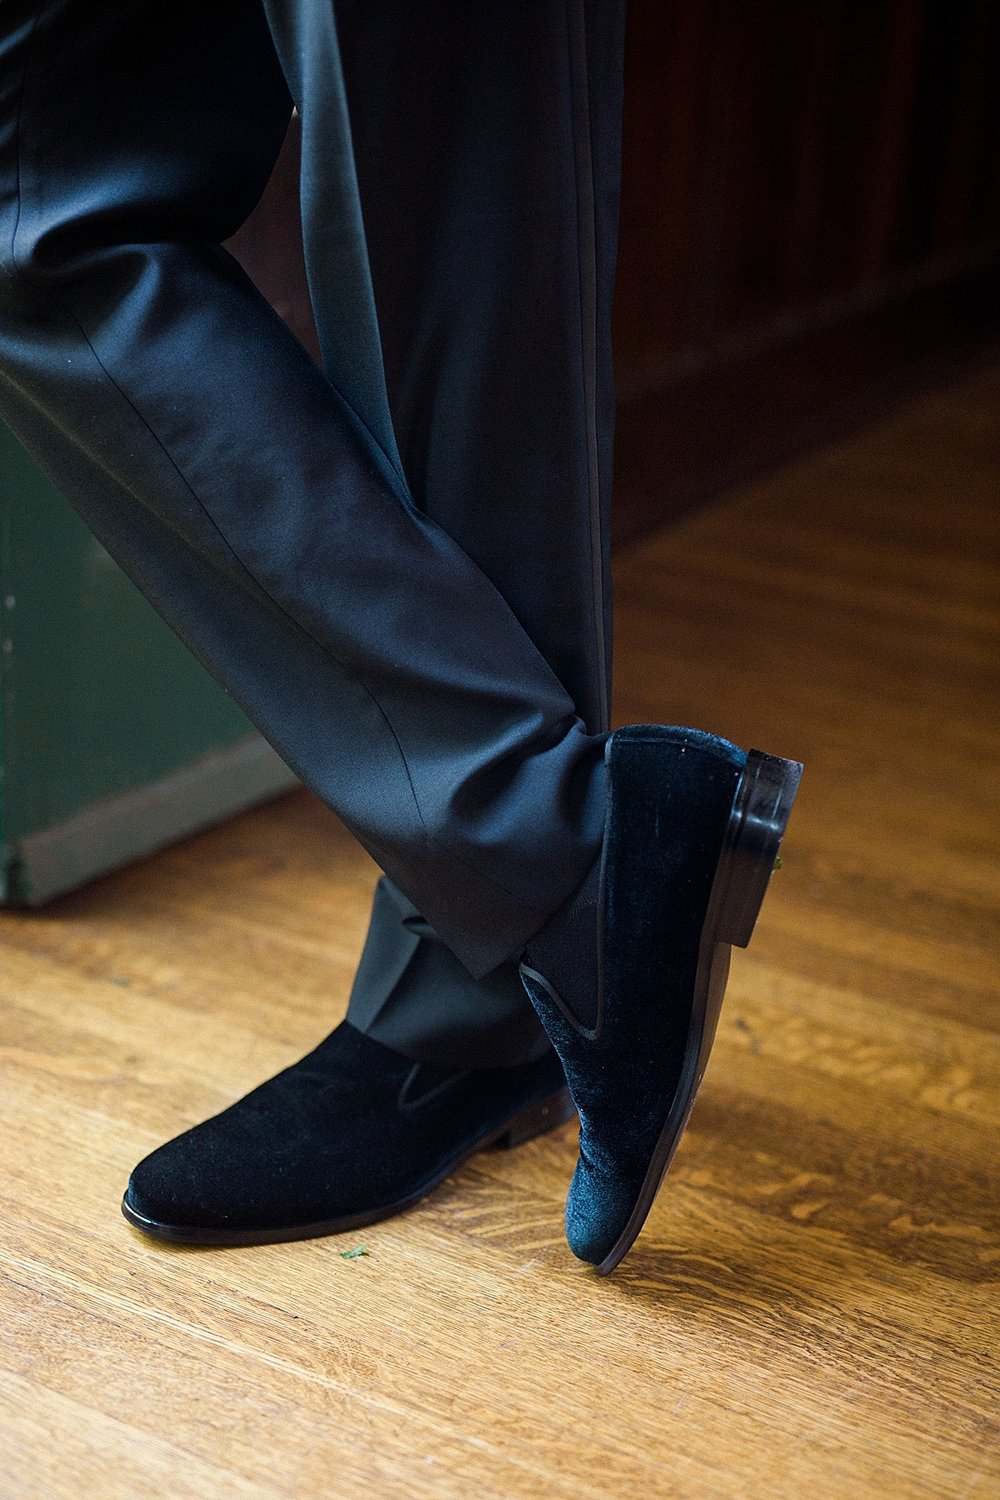 Groom in black velvet smoking loafers from the Black Tux for his wedding at Fenyes Mansion in Pasadena, California